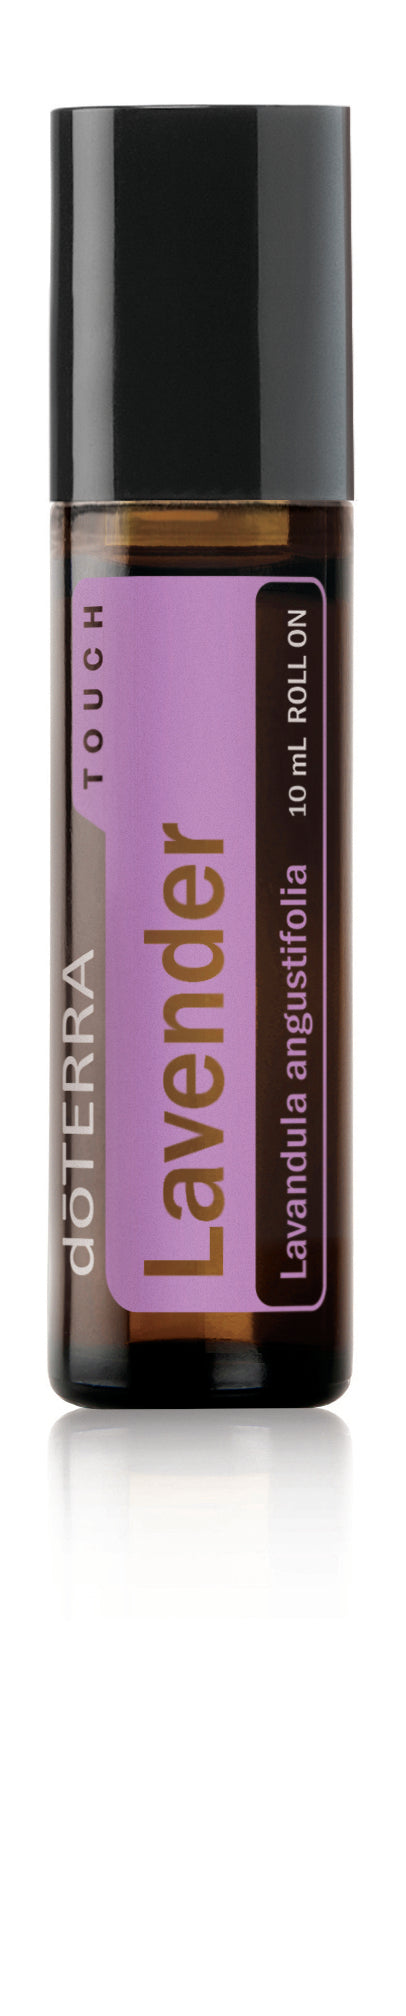 Lavender Touch Diluted Oil 10ml